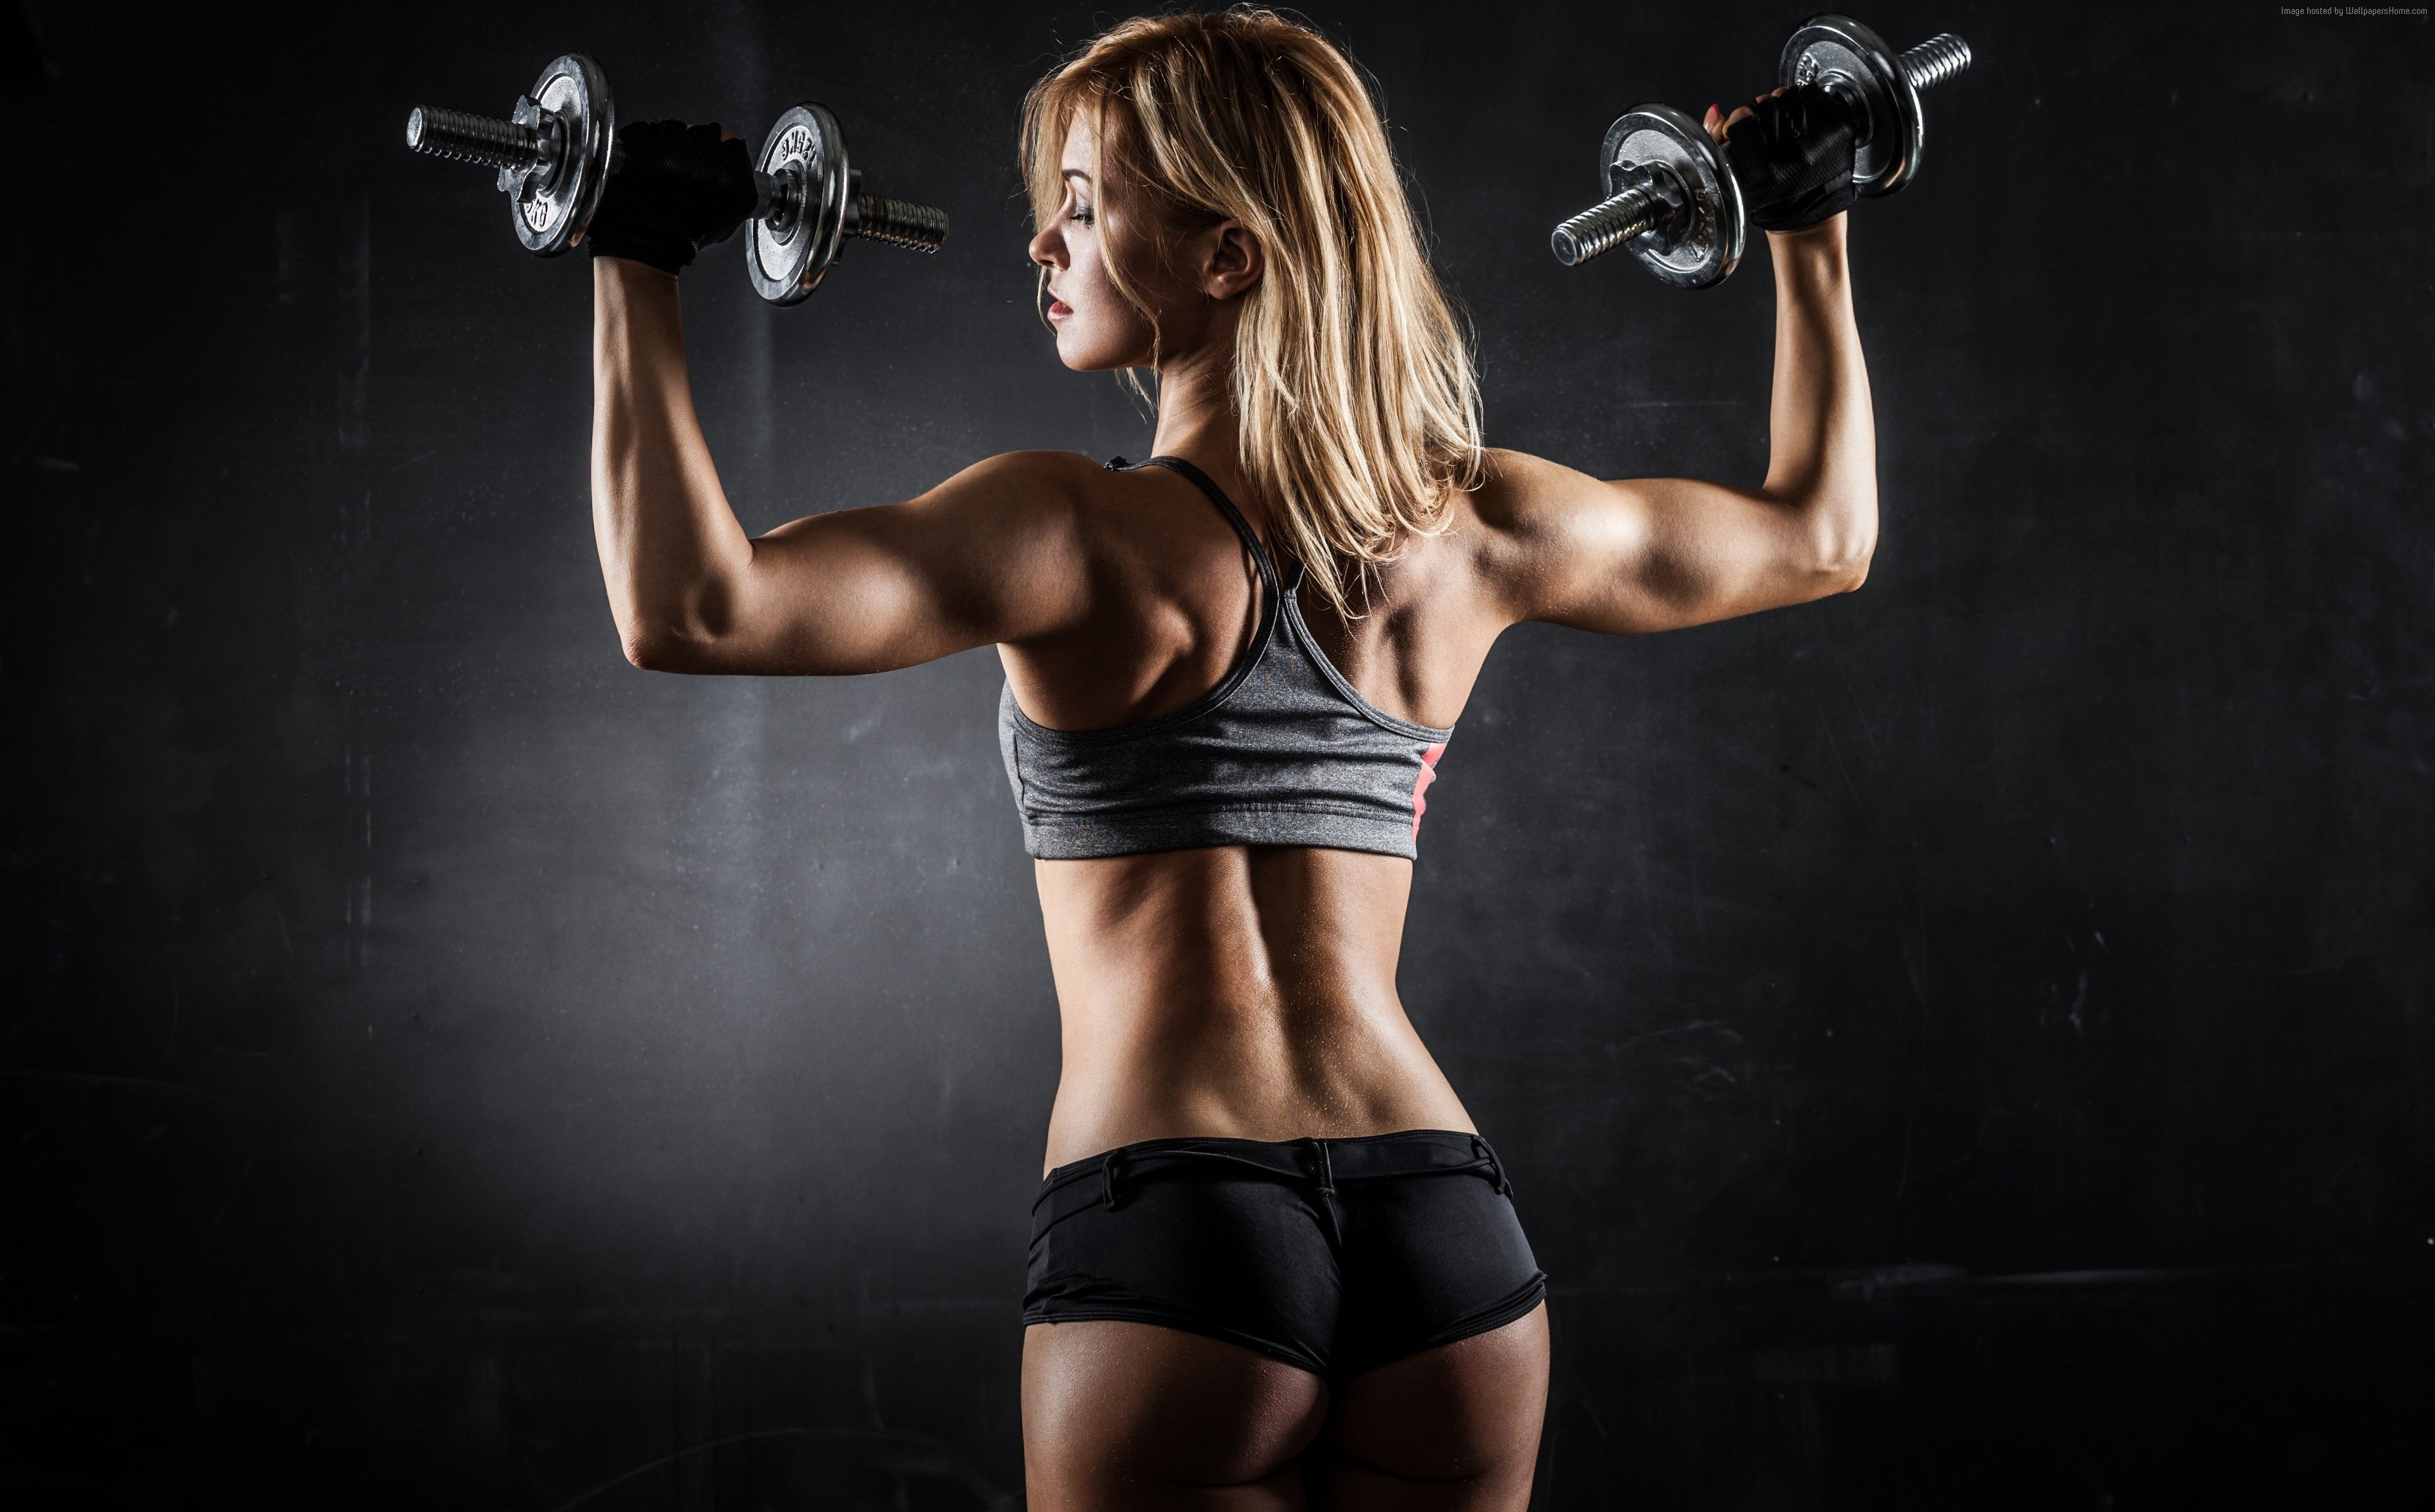 Wallpapers Girl, fitness, exercise, gym, dumbbells, workout